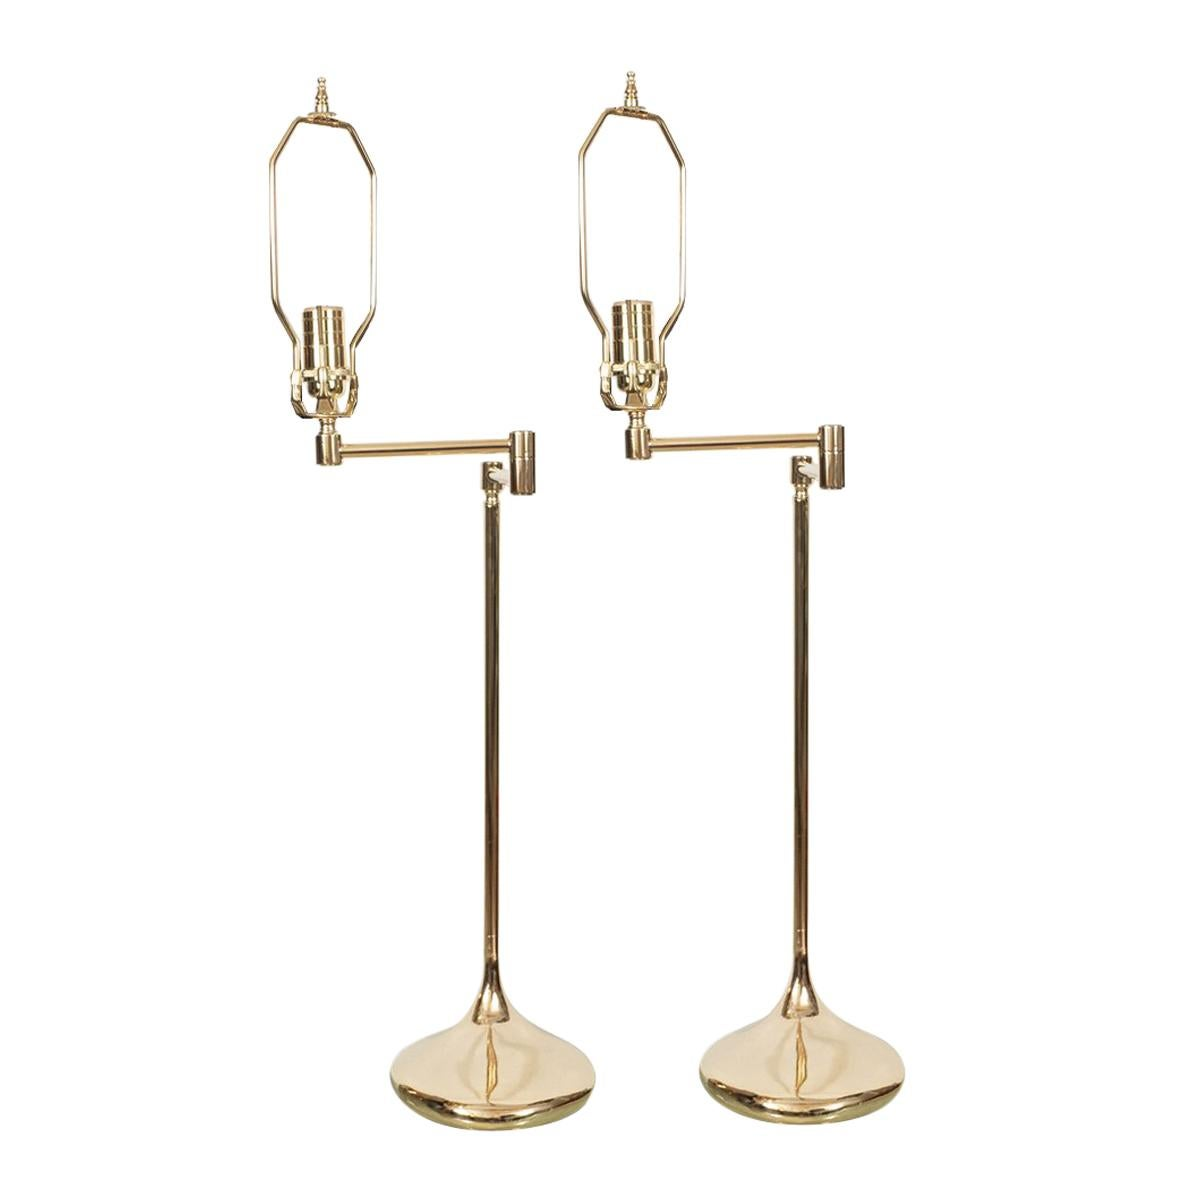 Pair of Unusual Brass Swing-Arm Table Lamps